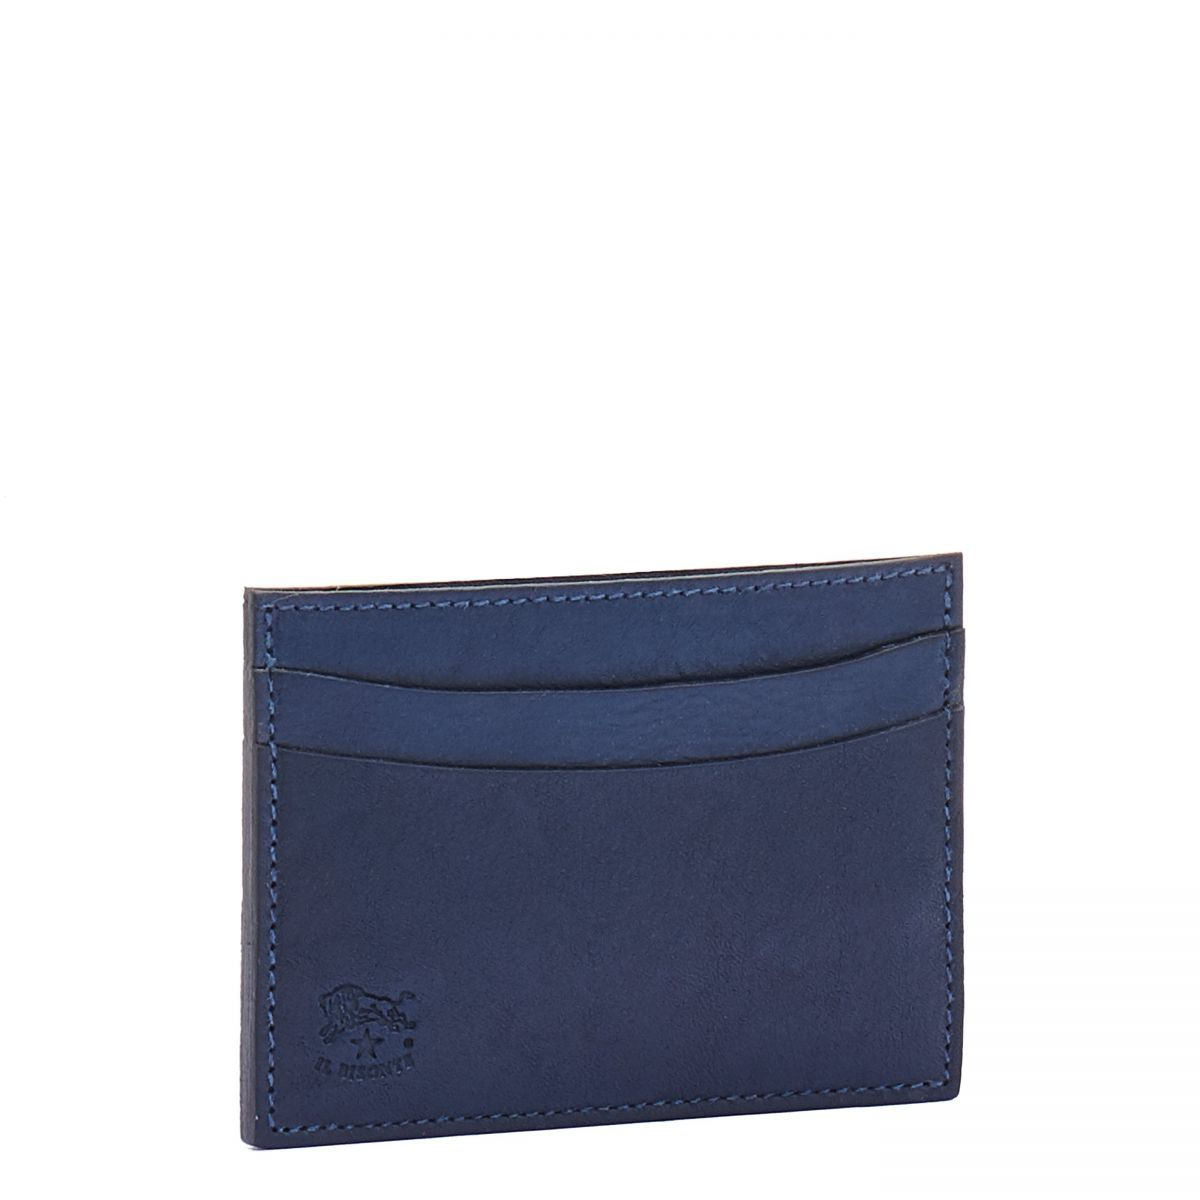 Card Case  in Cowhide Double Leather SCC019 color Blue | Details